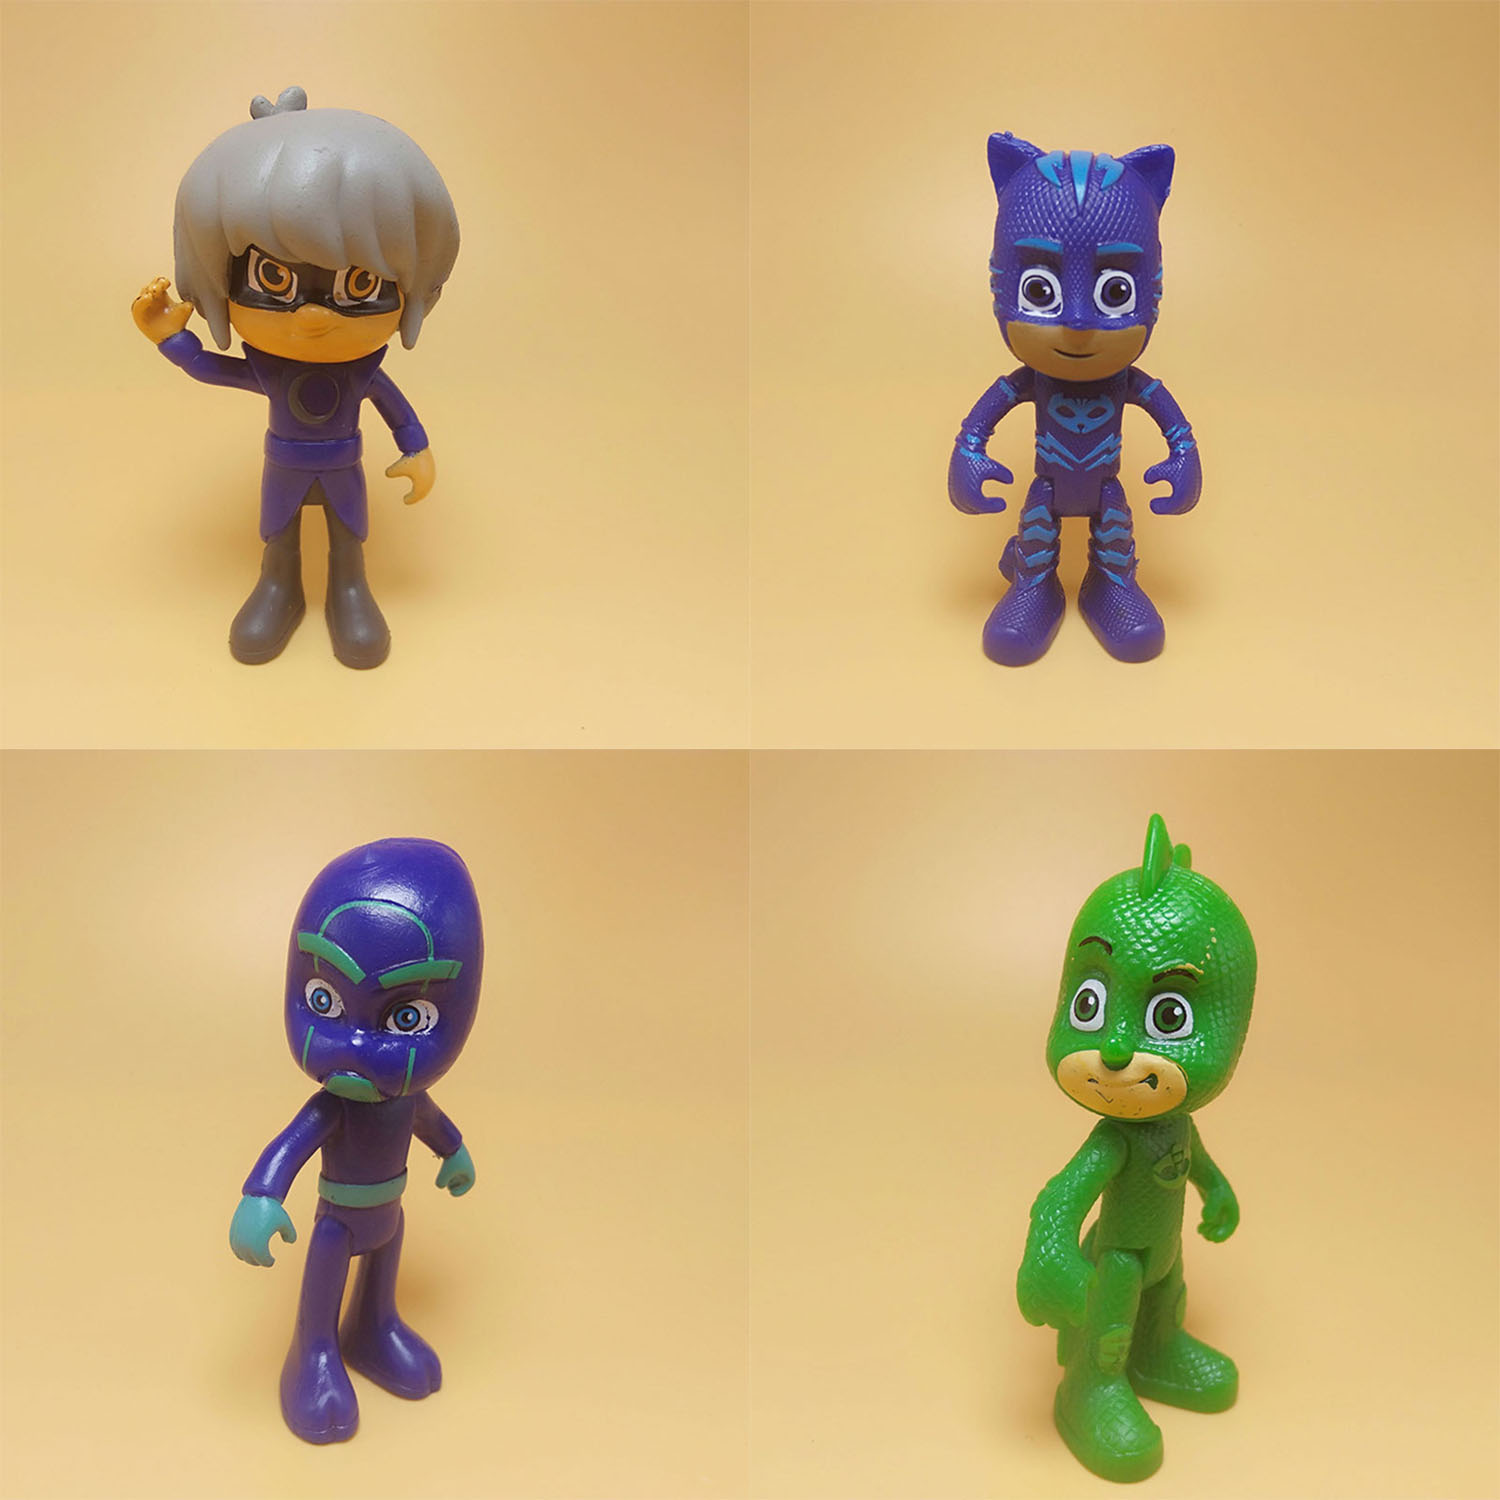 Cartoon Mv Pj Mask Character Figures Catboy Owlette GekkoAnime Toys Birthday Gift Toys For Children Kids